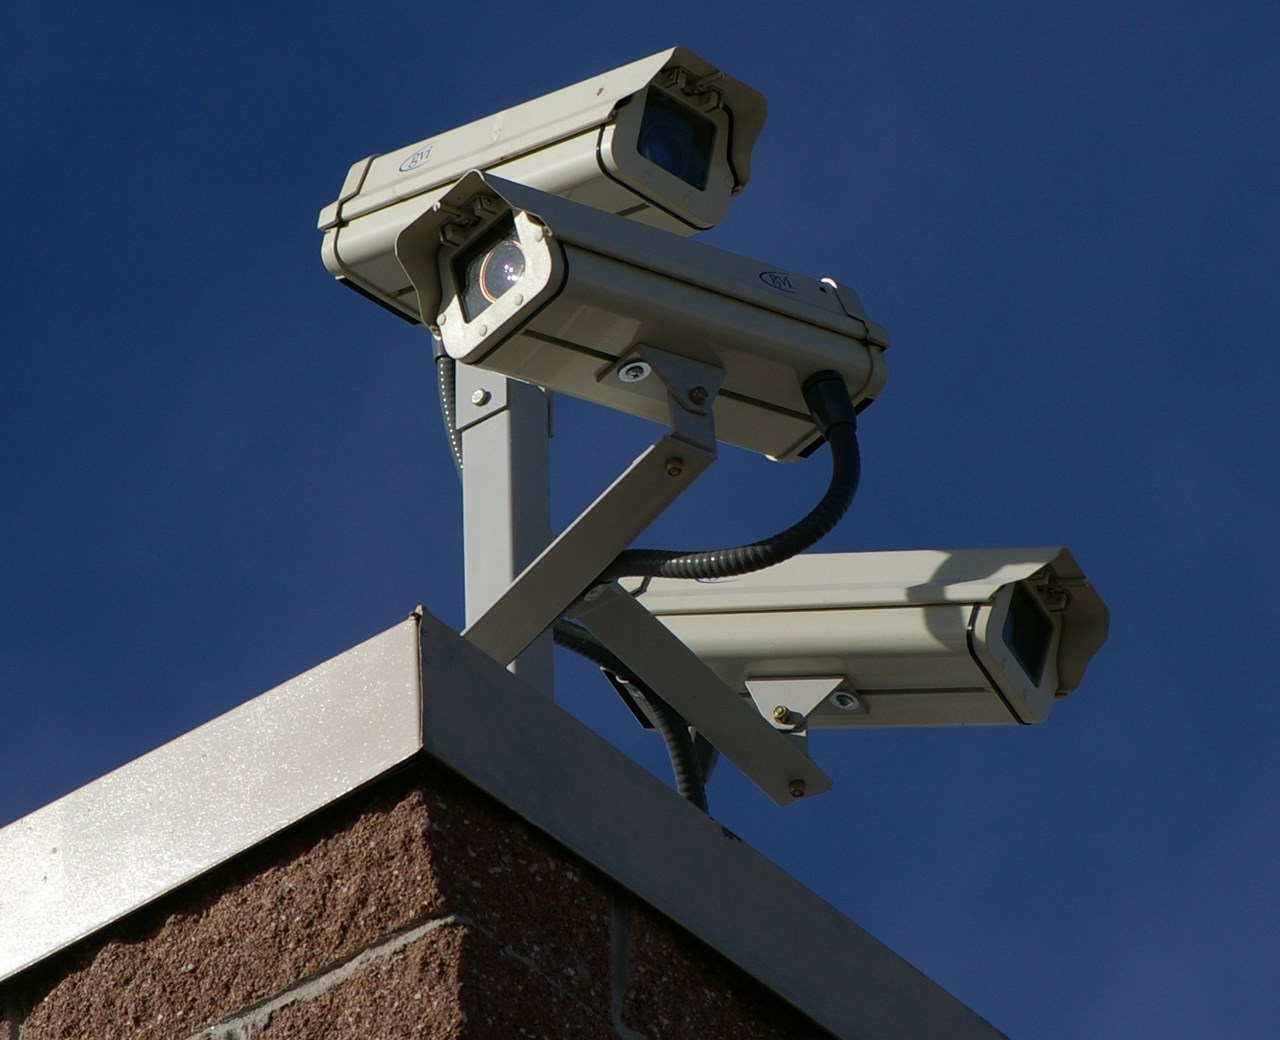 Noida administration to review proposal to install additional network of CCTVs